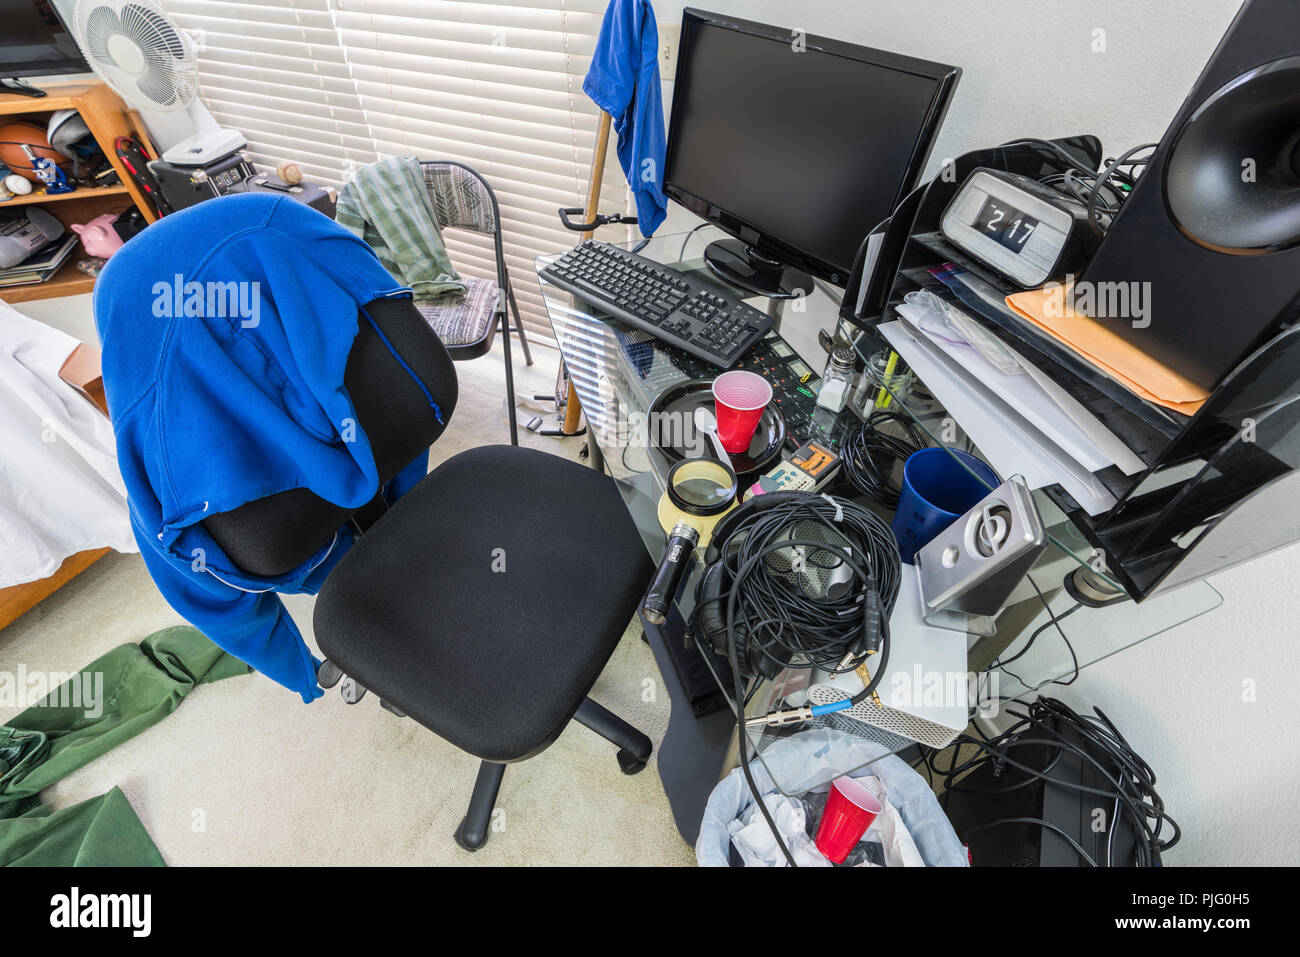 Messy, cluttered teenage boys bedroom desk and work area. - Stock Image